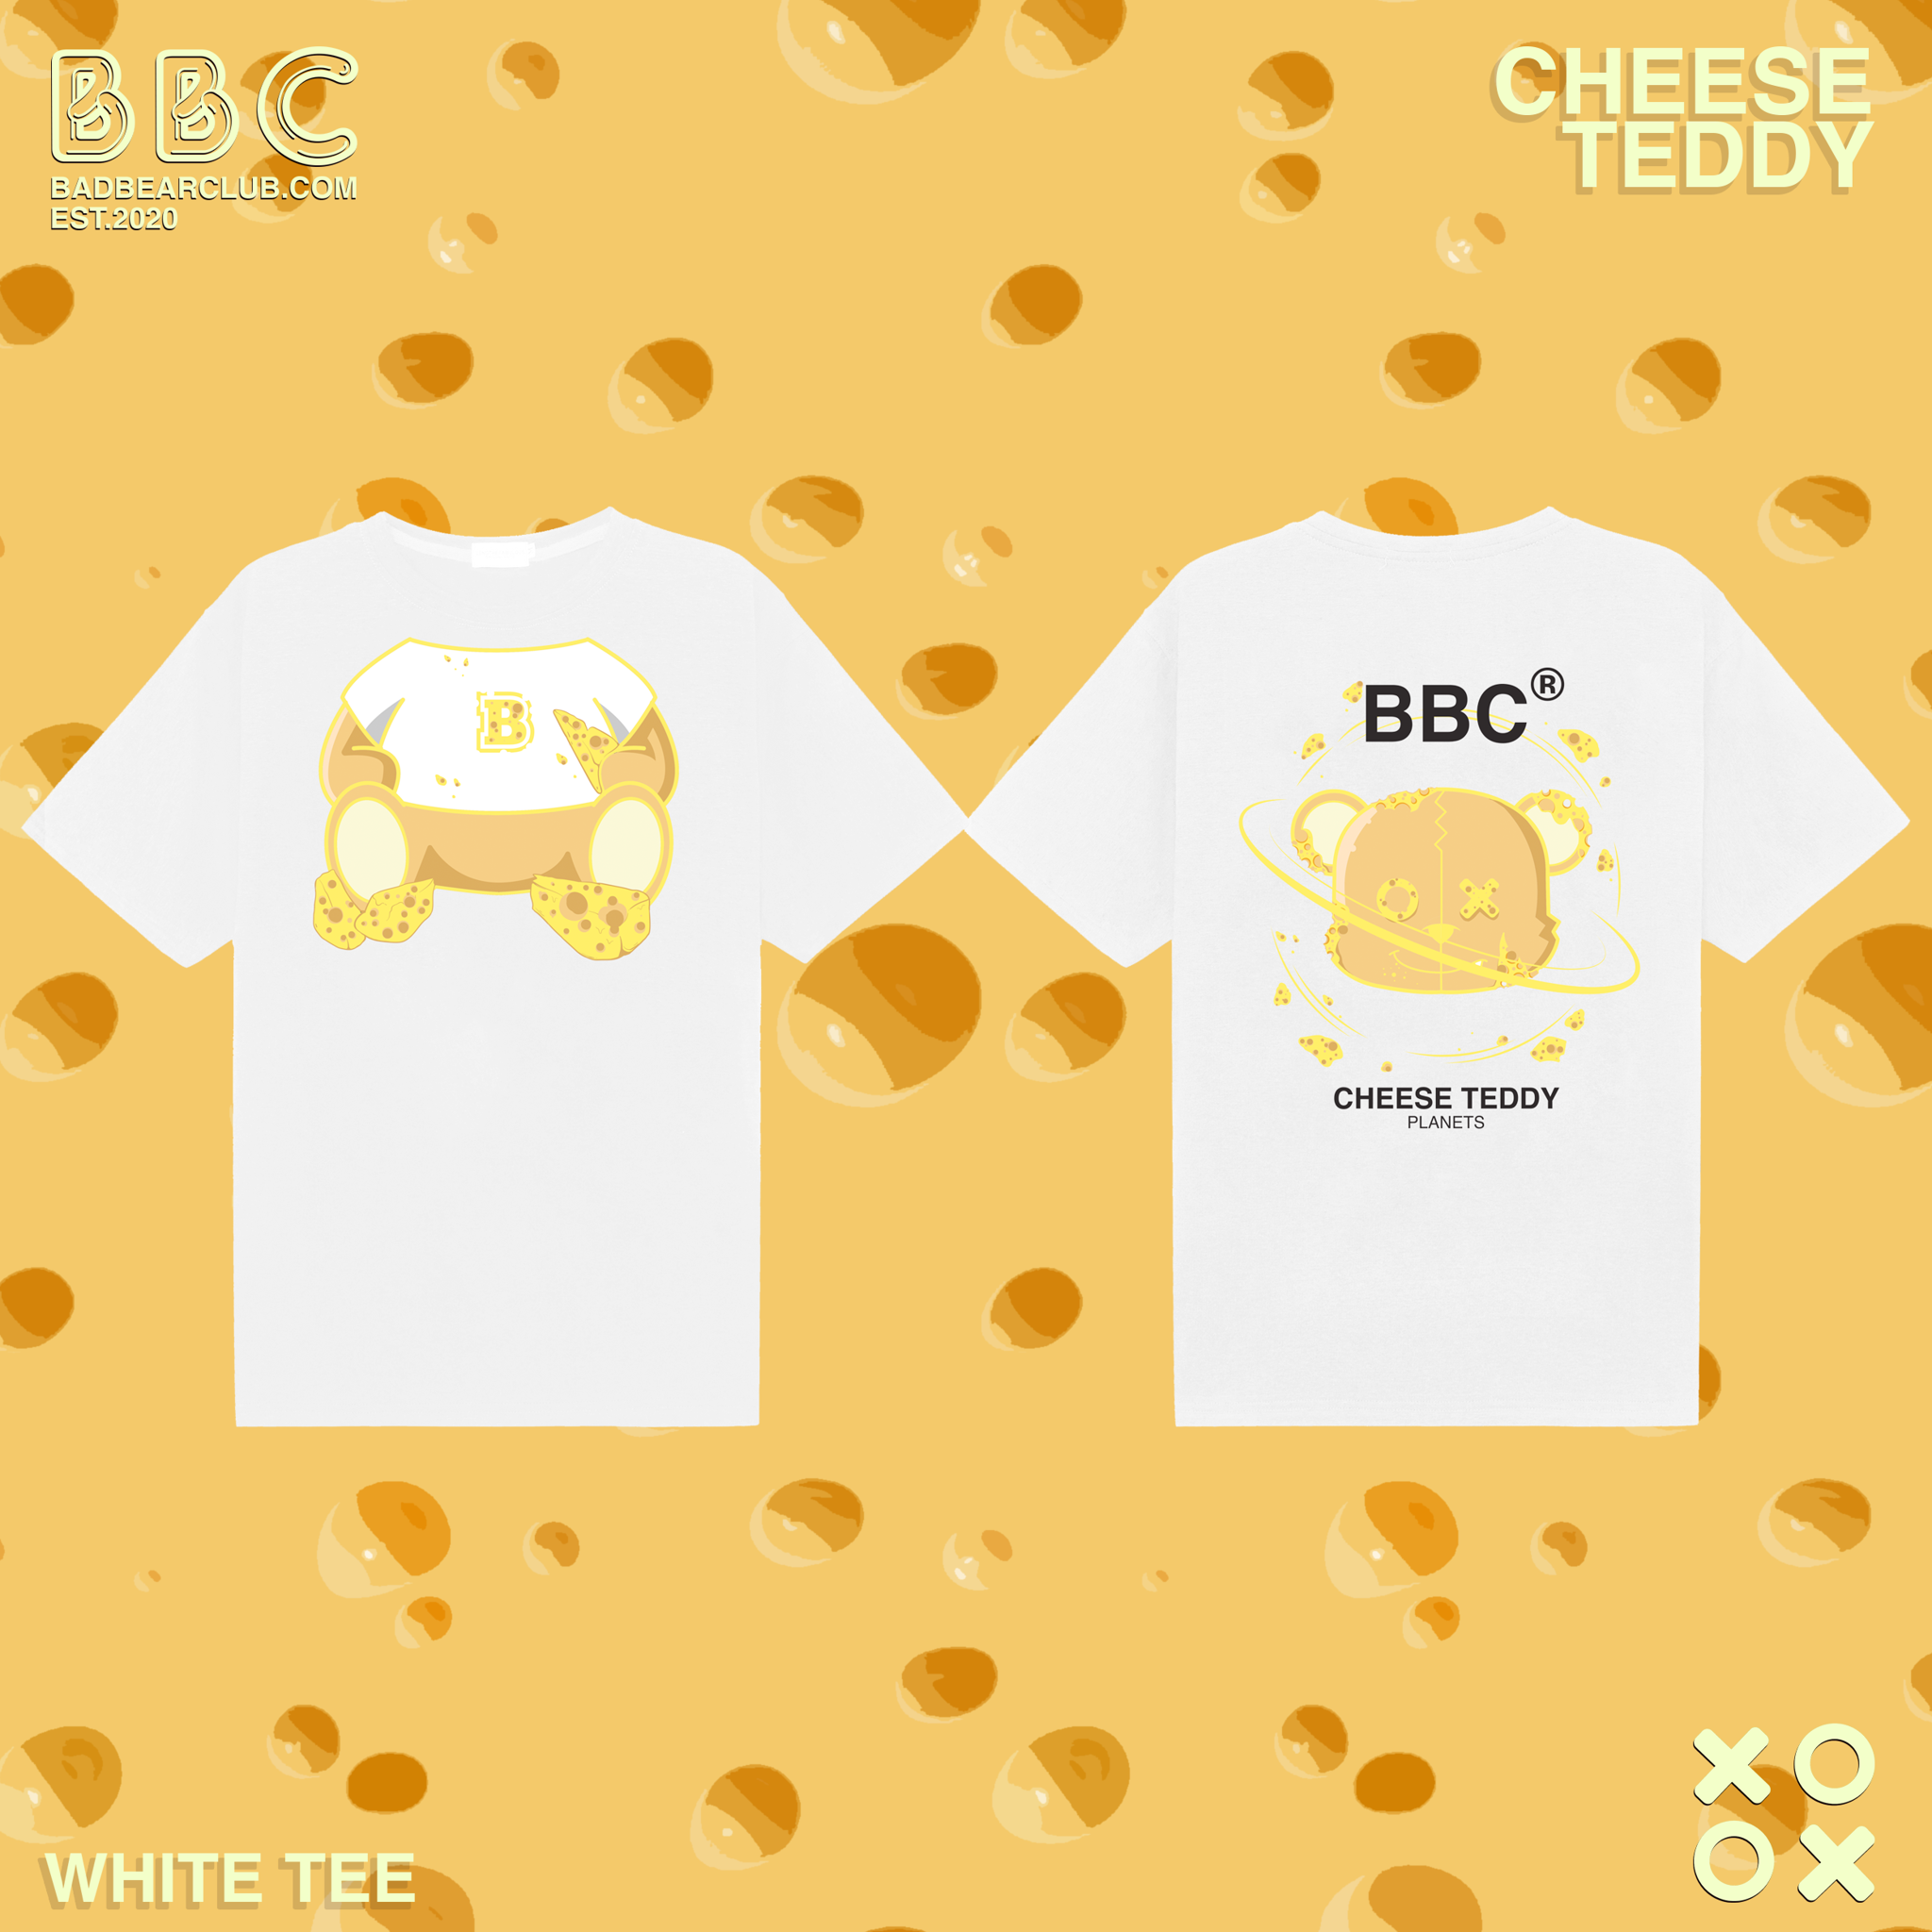 BBC CHEESE TEDDY WHITE TEE